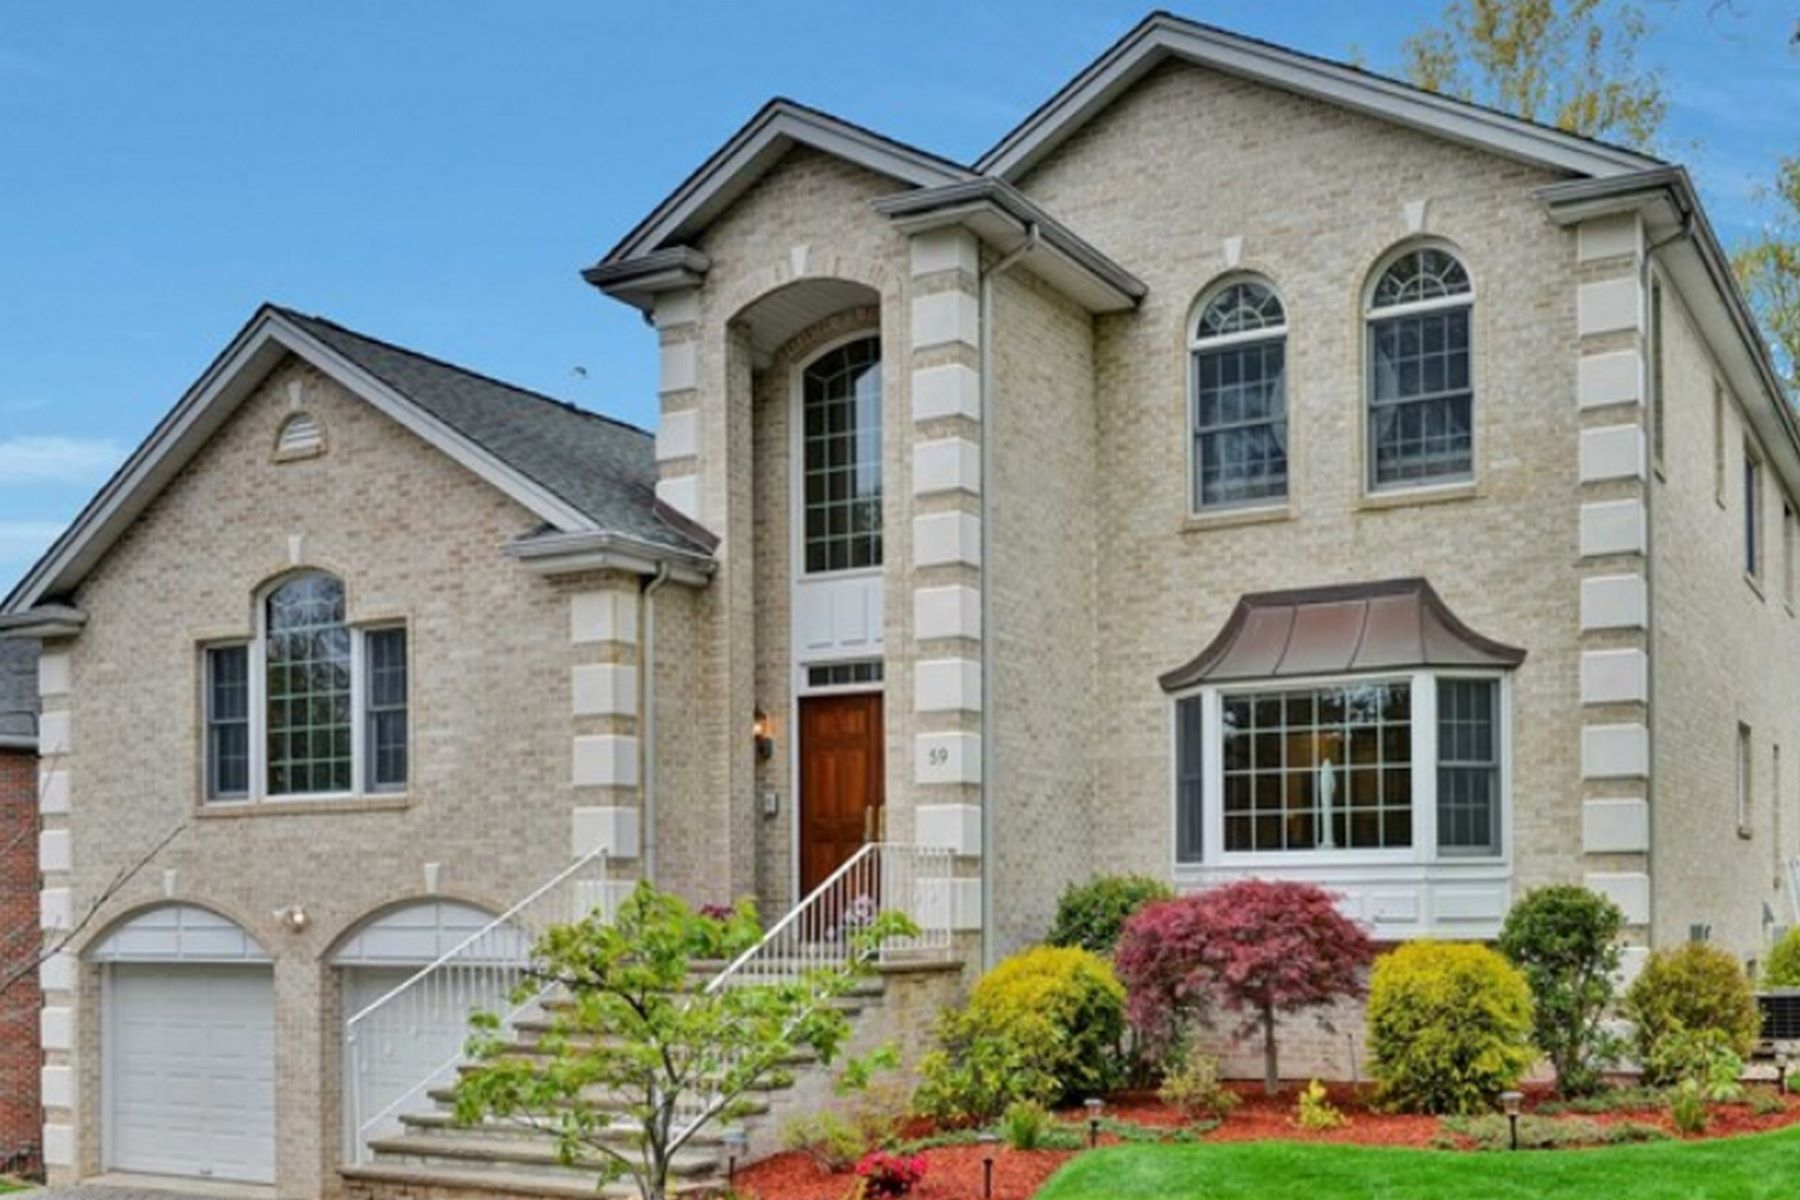 Single Family Homes for Sale at 59 Toni Dr Englewood Cliffs, New Jersey 07632 United States